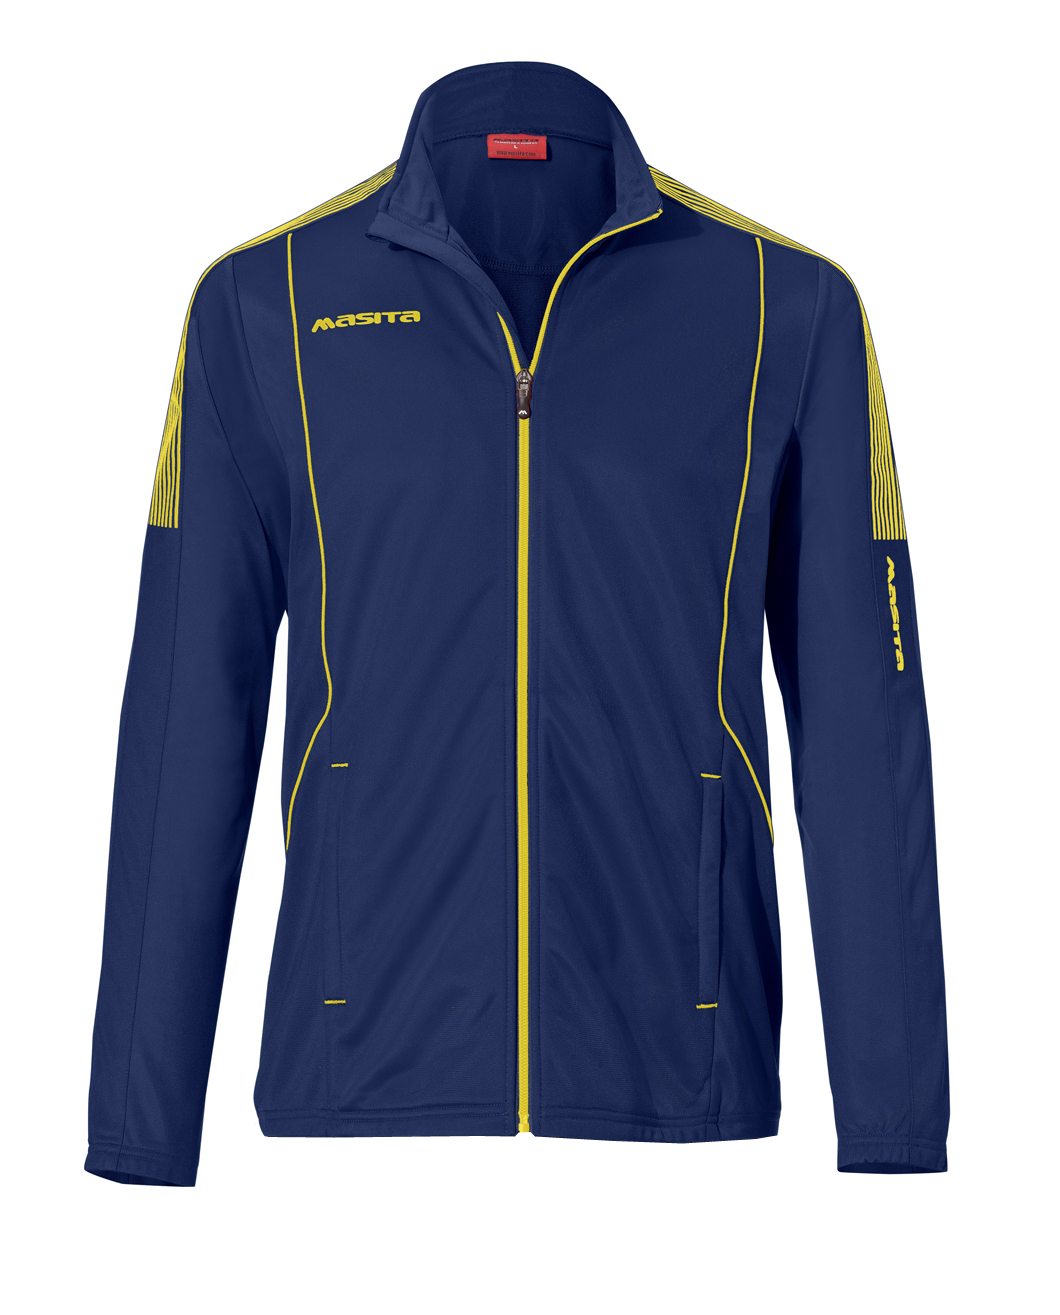 Polyester Jacket Barca  Navy Blue / Yellow